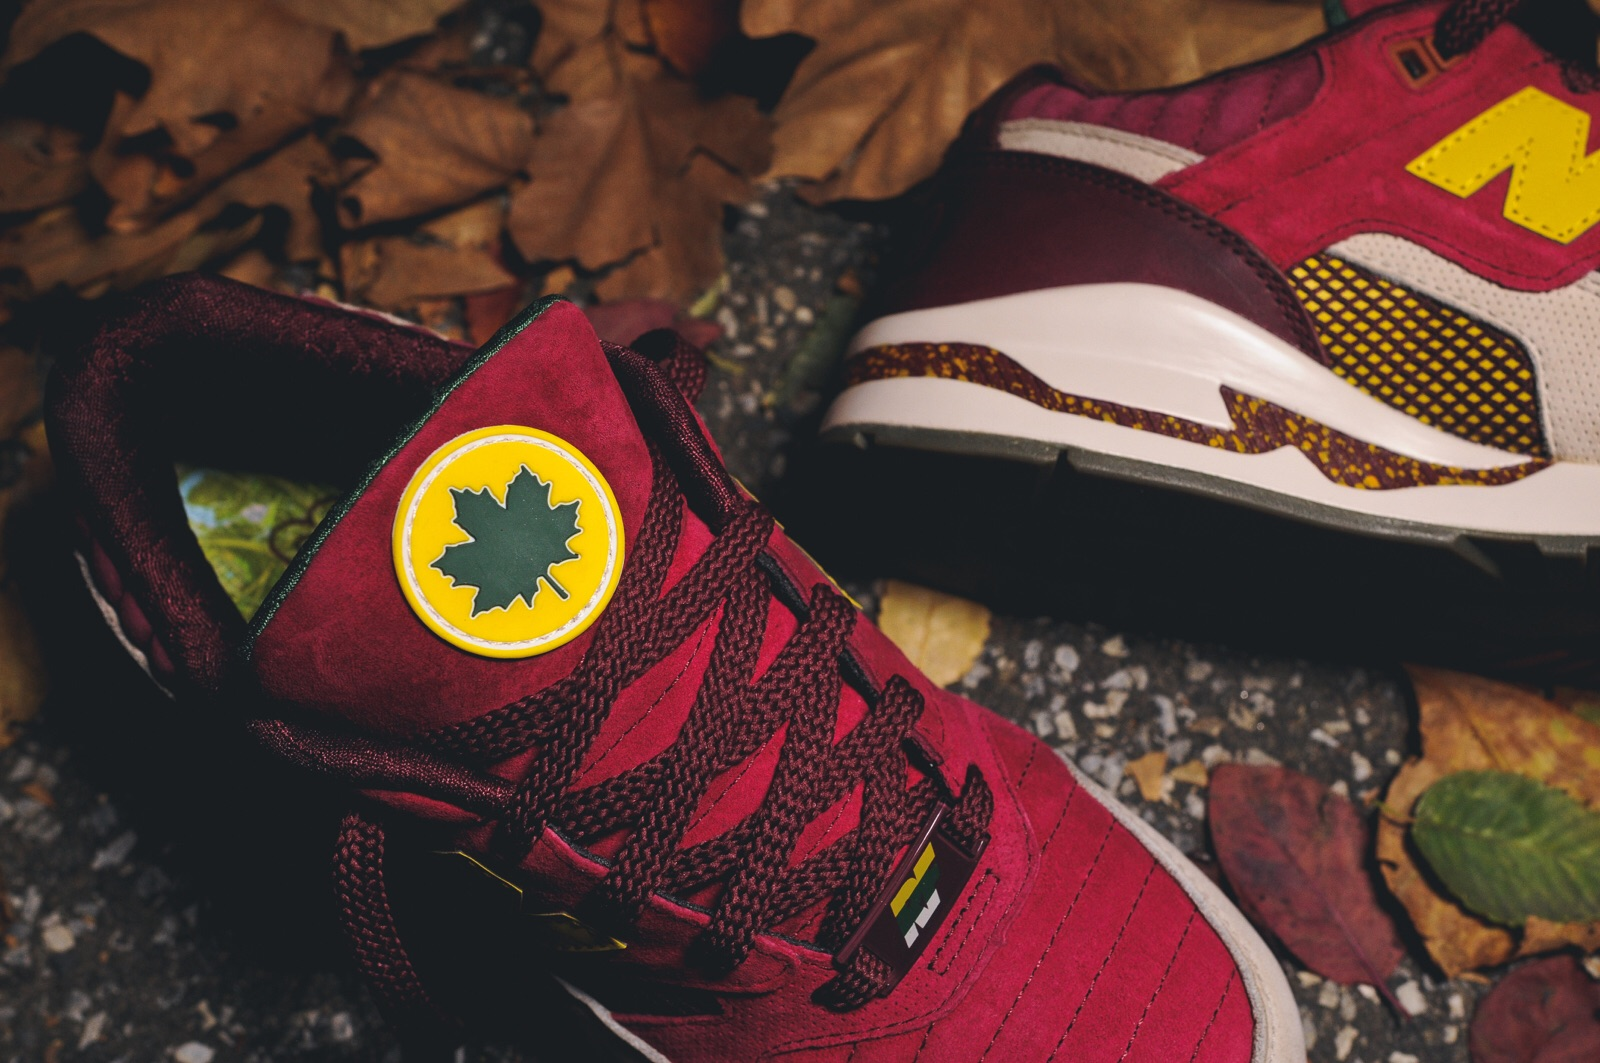 """The Ronnie Fieg x New Balance 530 """"Central Park"""" will be available this Friday, November 28th, for a retail of $185 USD."""